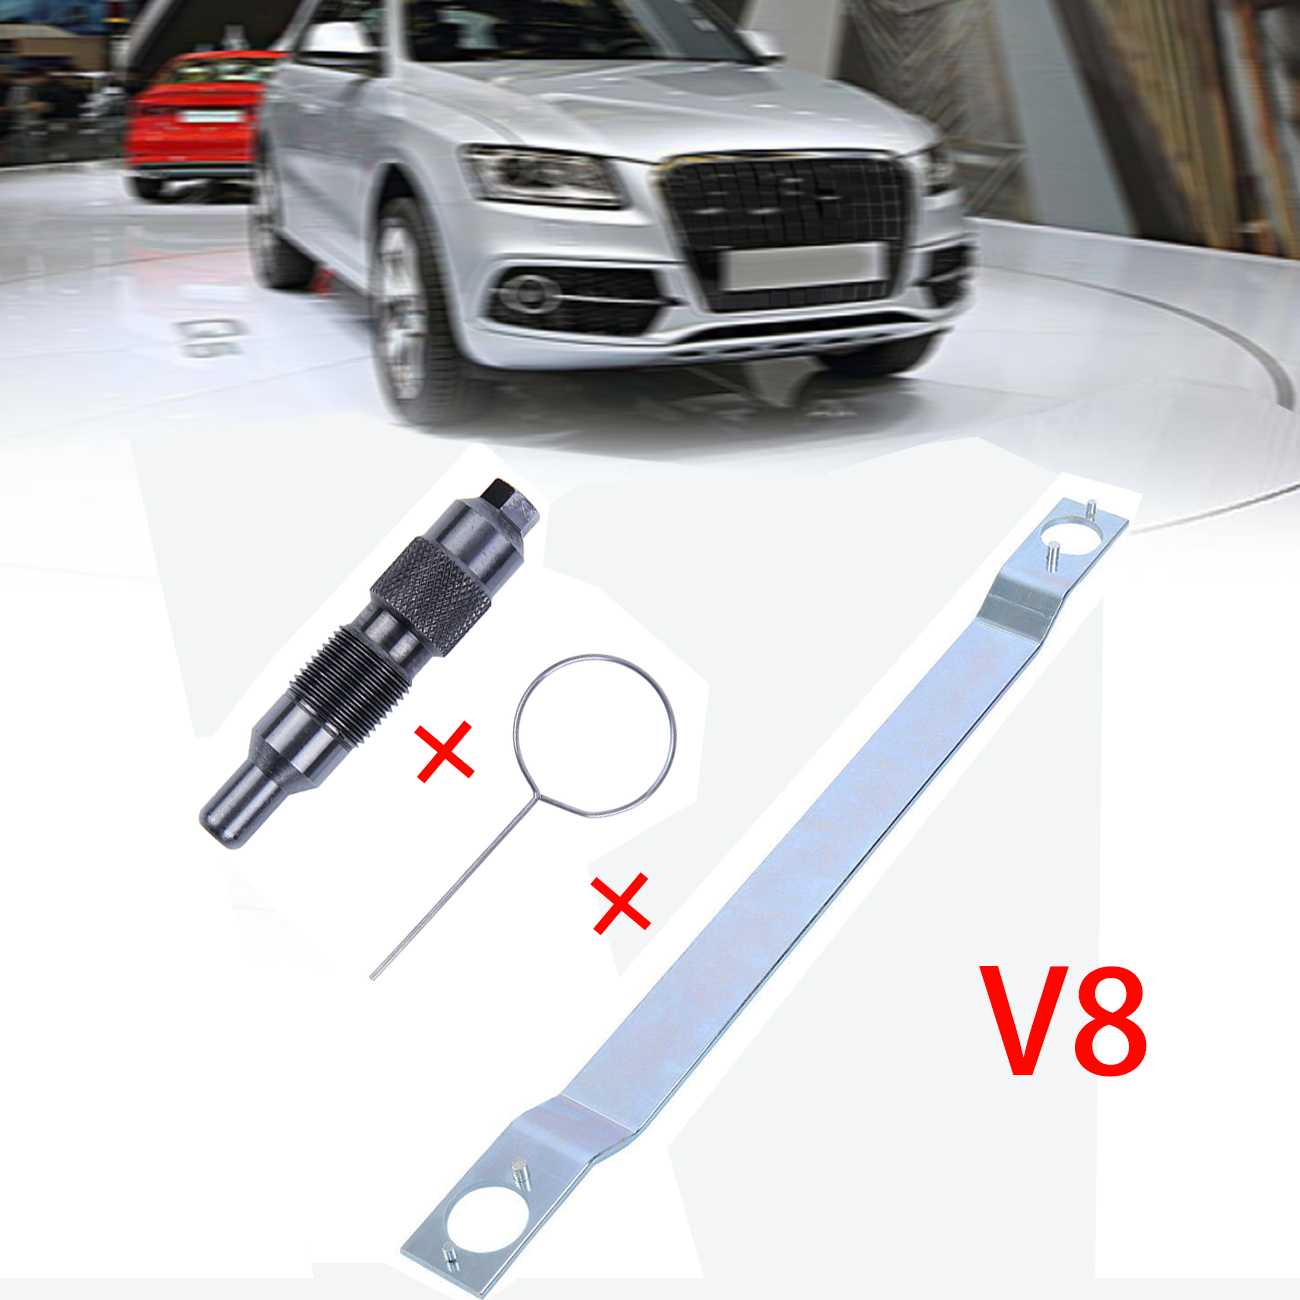 Samger Engine Camshaft Alignment Timing Tool Timing Belt Fxing Tool For VW Touareg Phaeton 3.7 4.2 For Audi A6 A8 S6